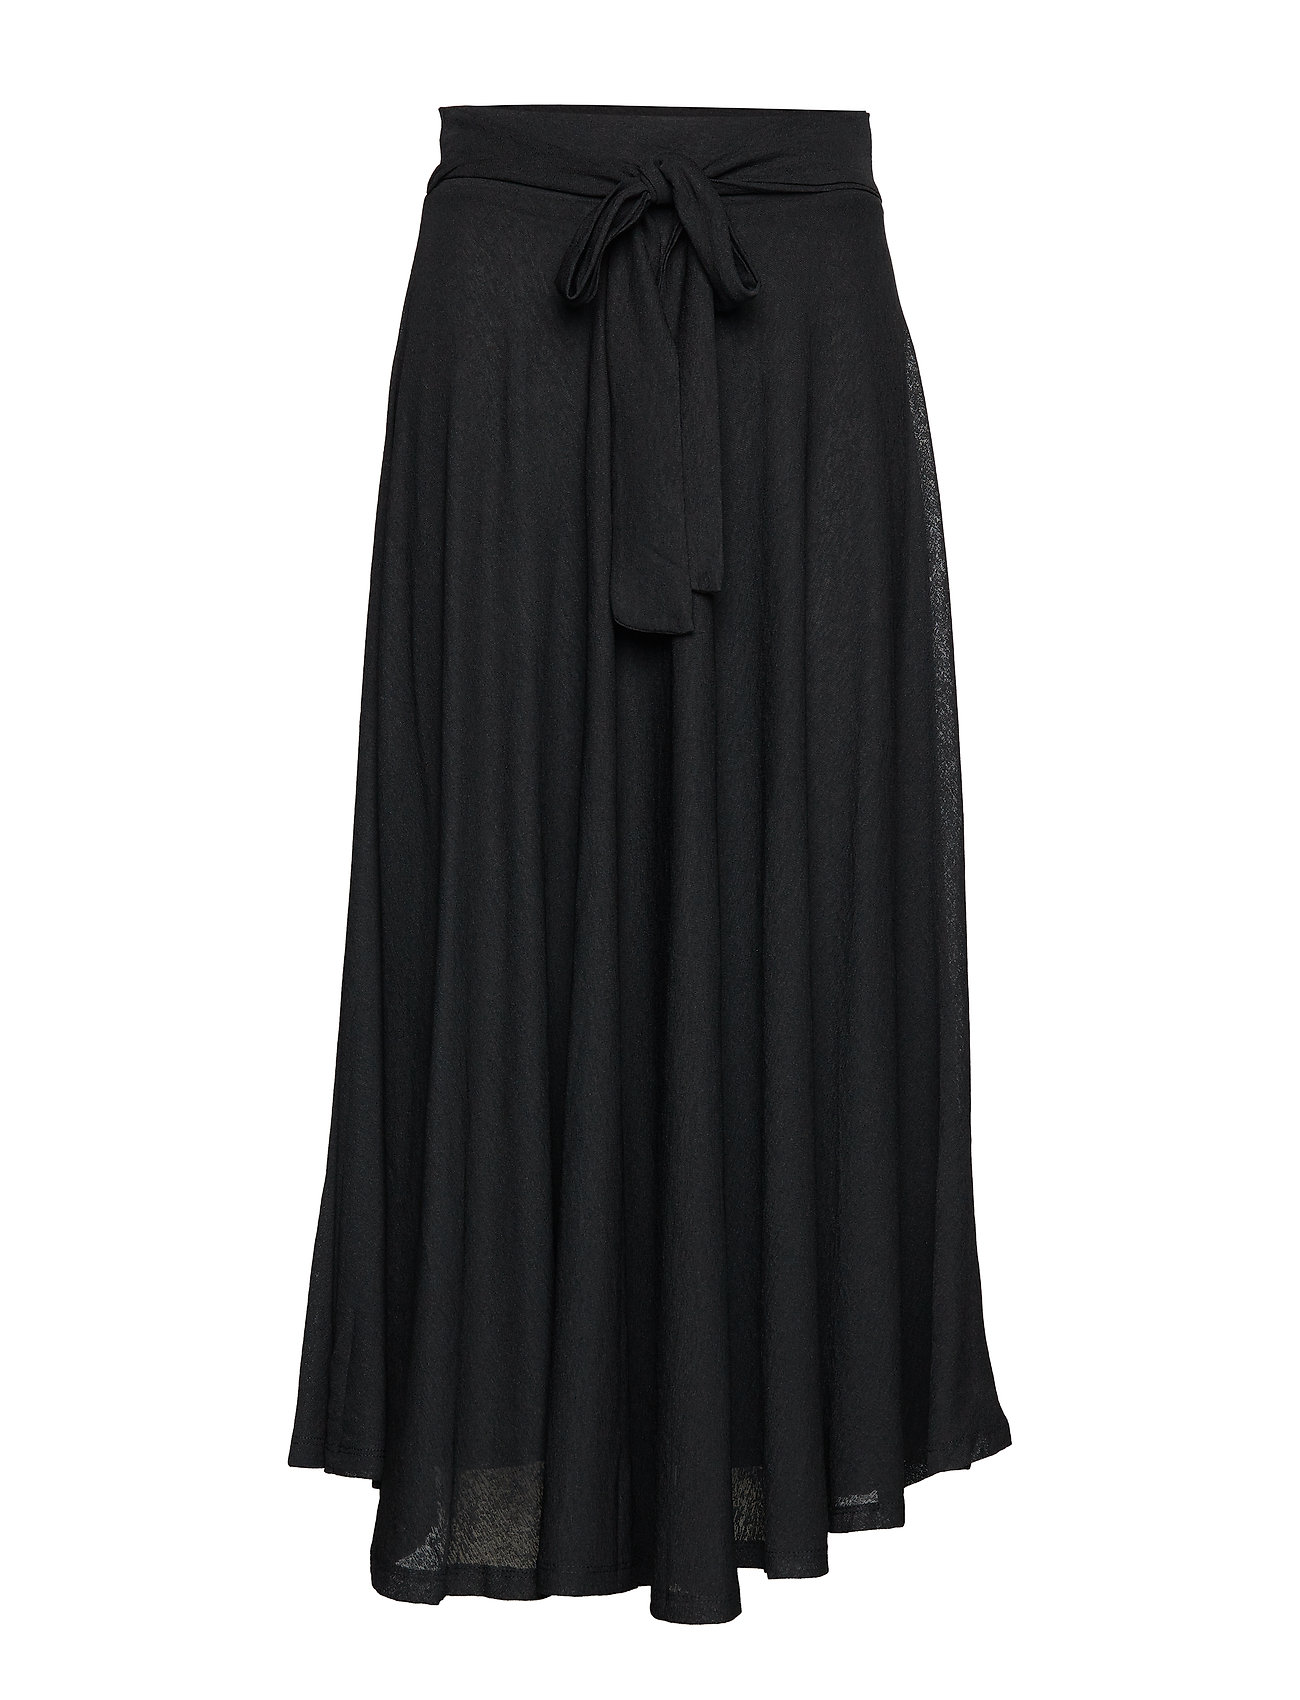 KnittedblackEsprit Skirts Casual Casual KnittedblackEsprit KnittedblackEsprit Casual KnittedblackEsprit Skirts Skirts Casual Skirts OPZTXuik